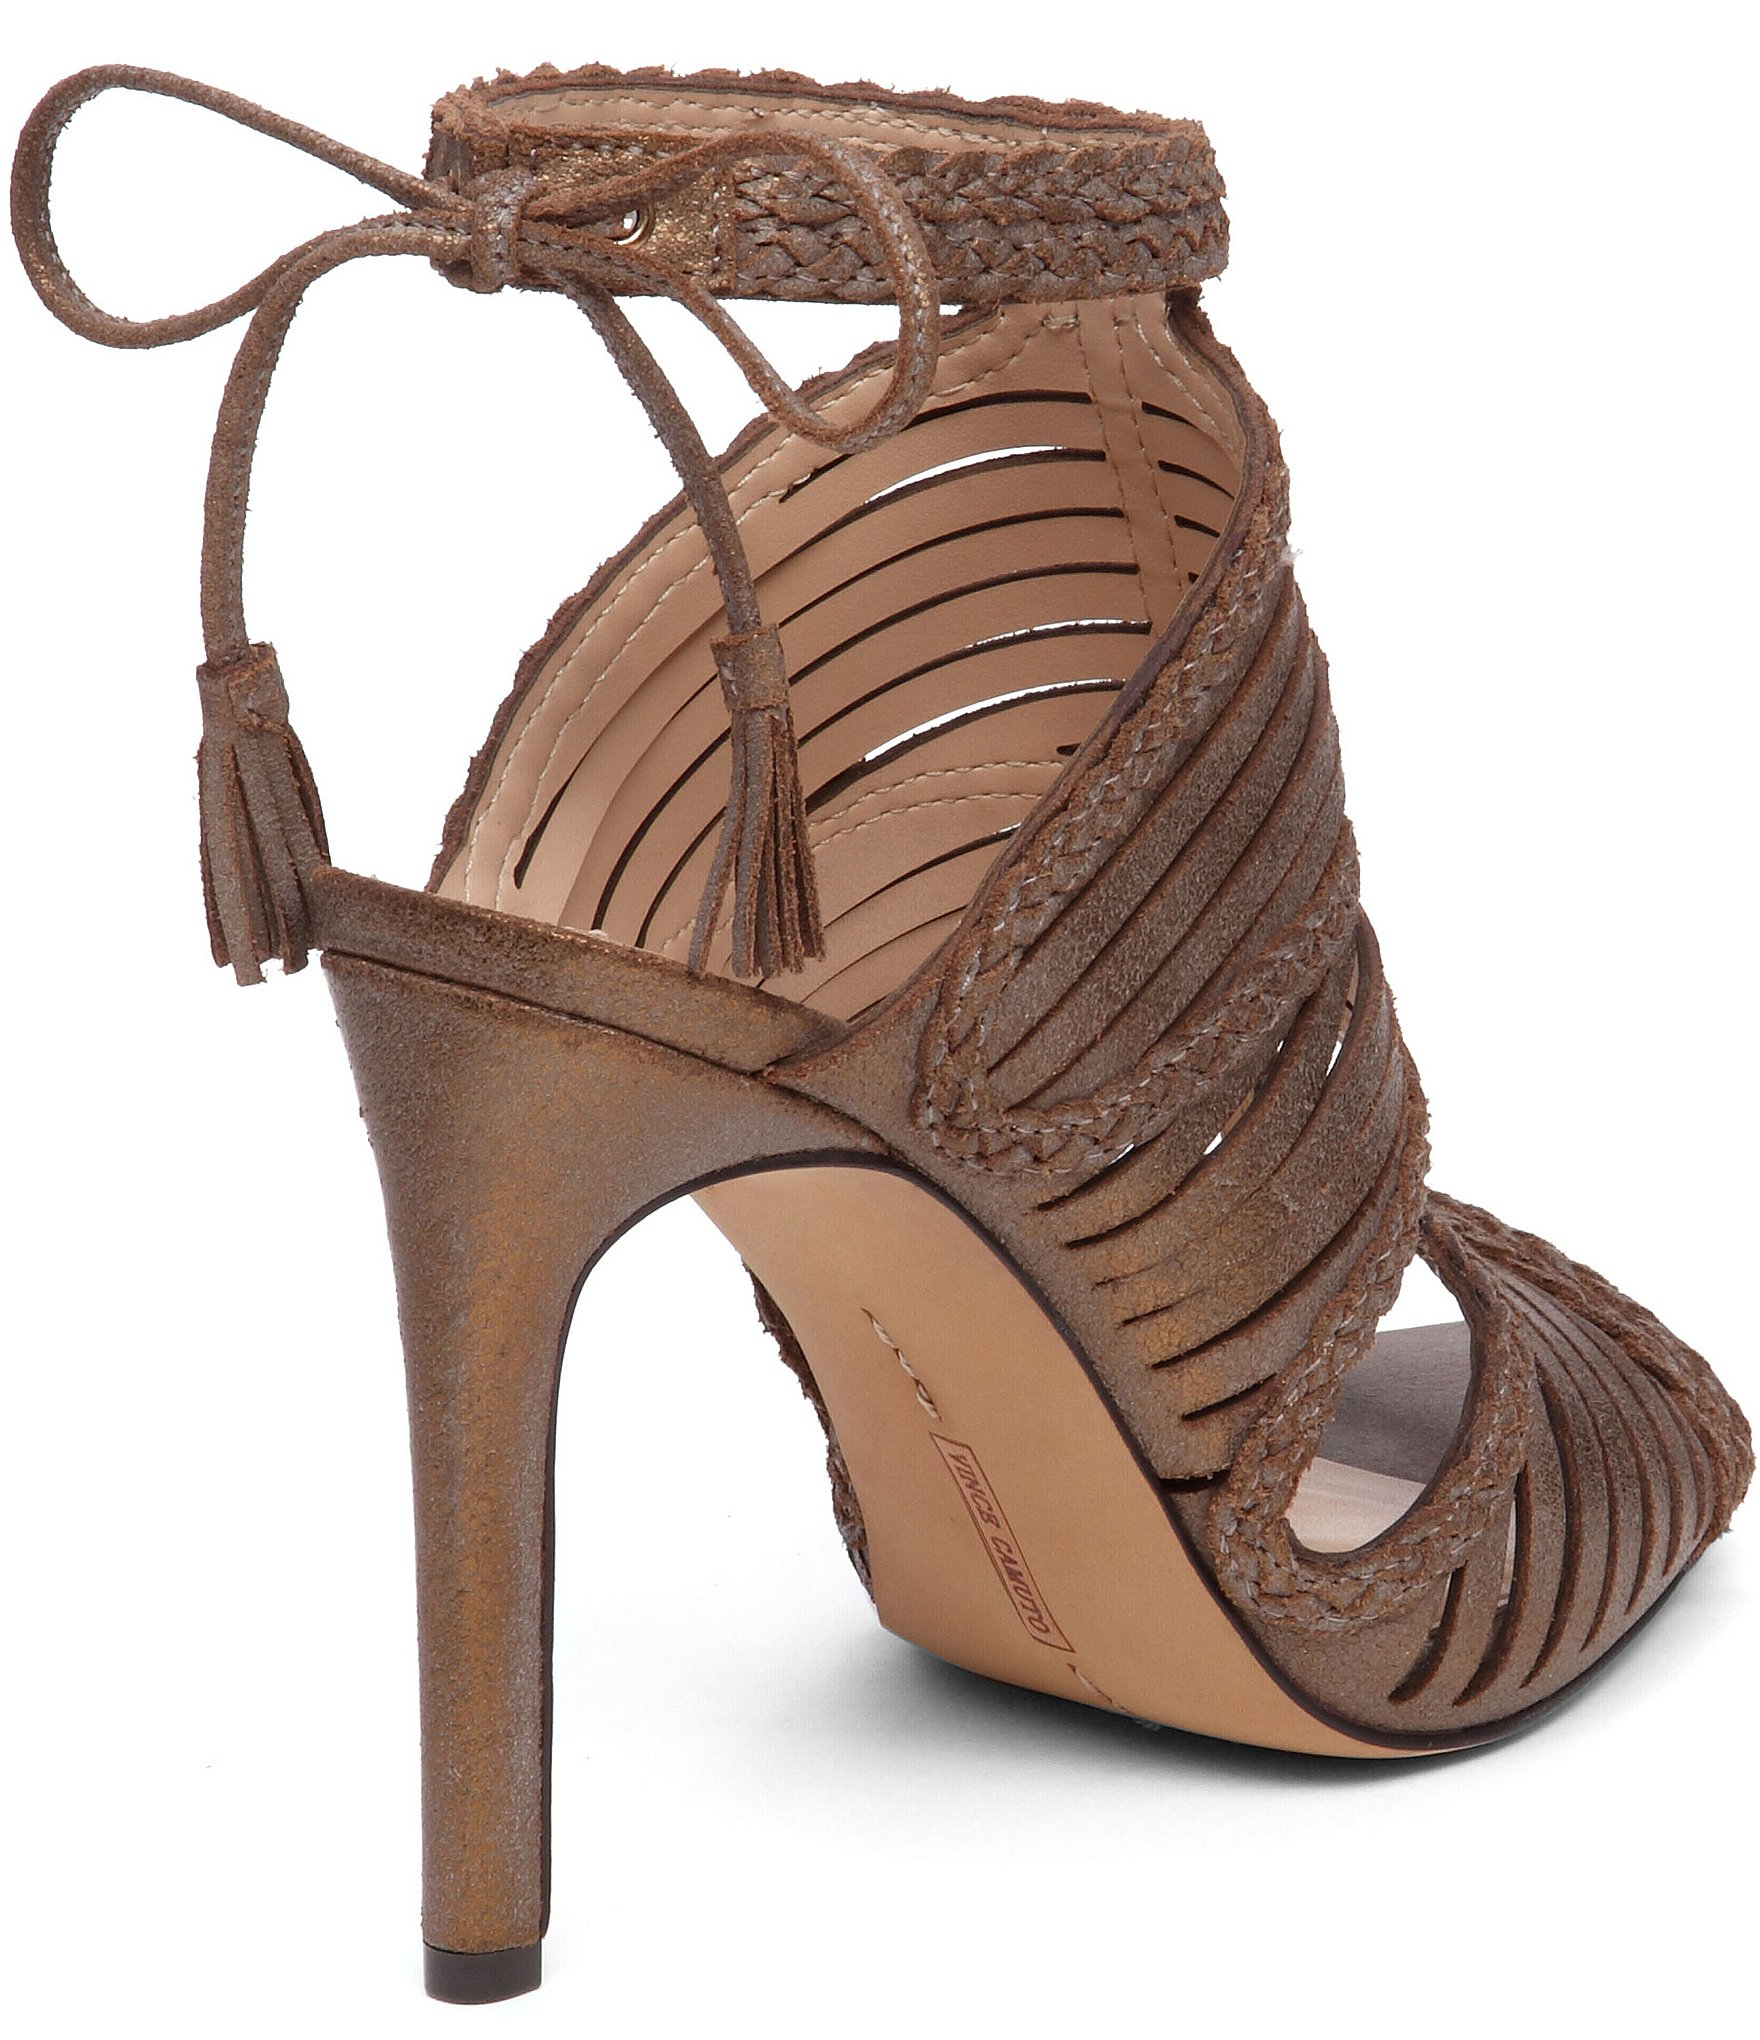 Vince camuto Kabira Strappy High Heel Sandals in Brown | Lyst